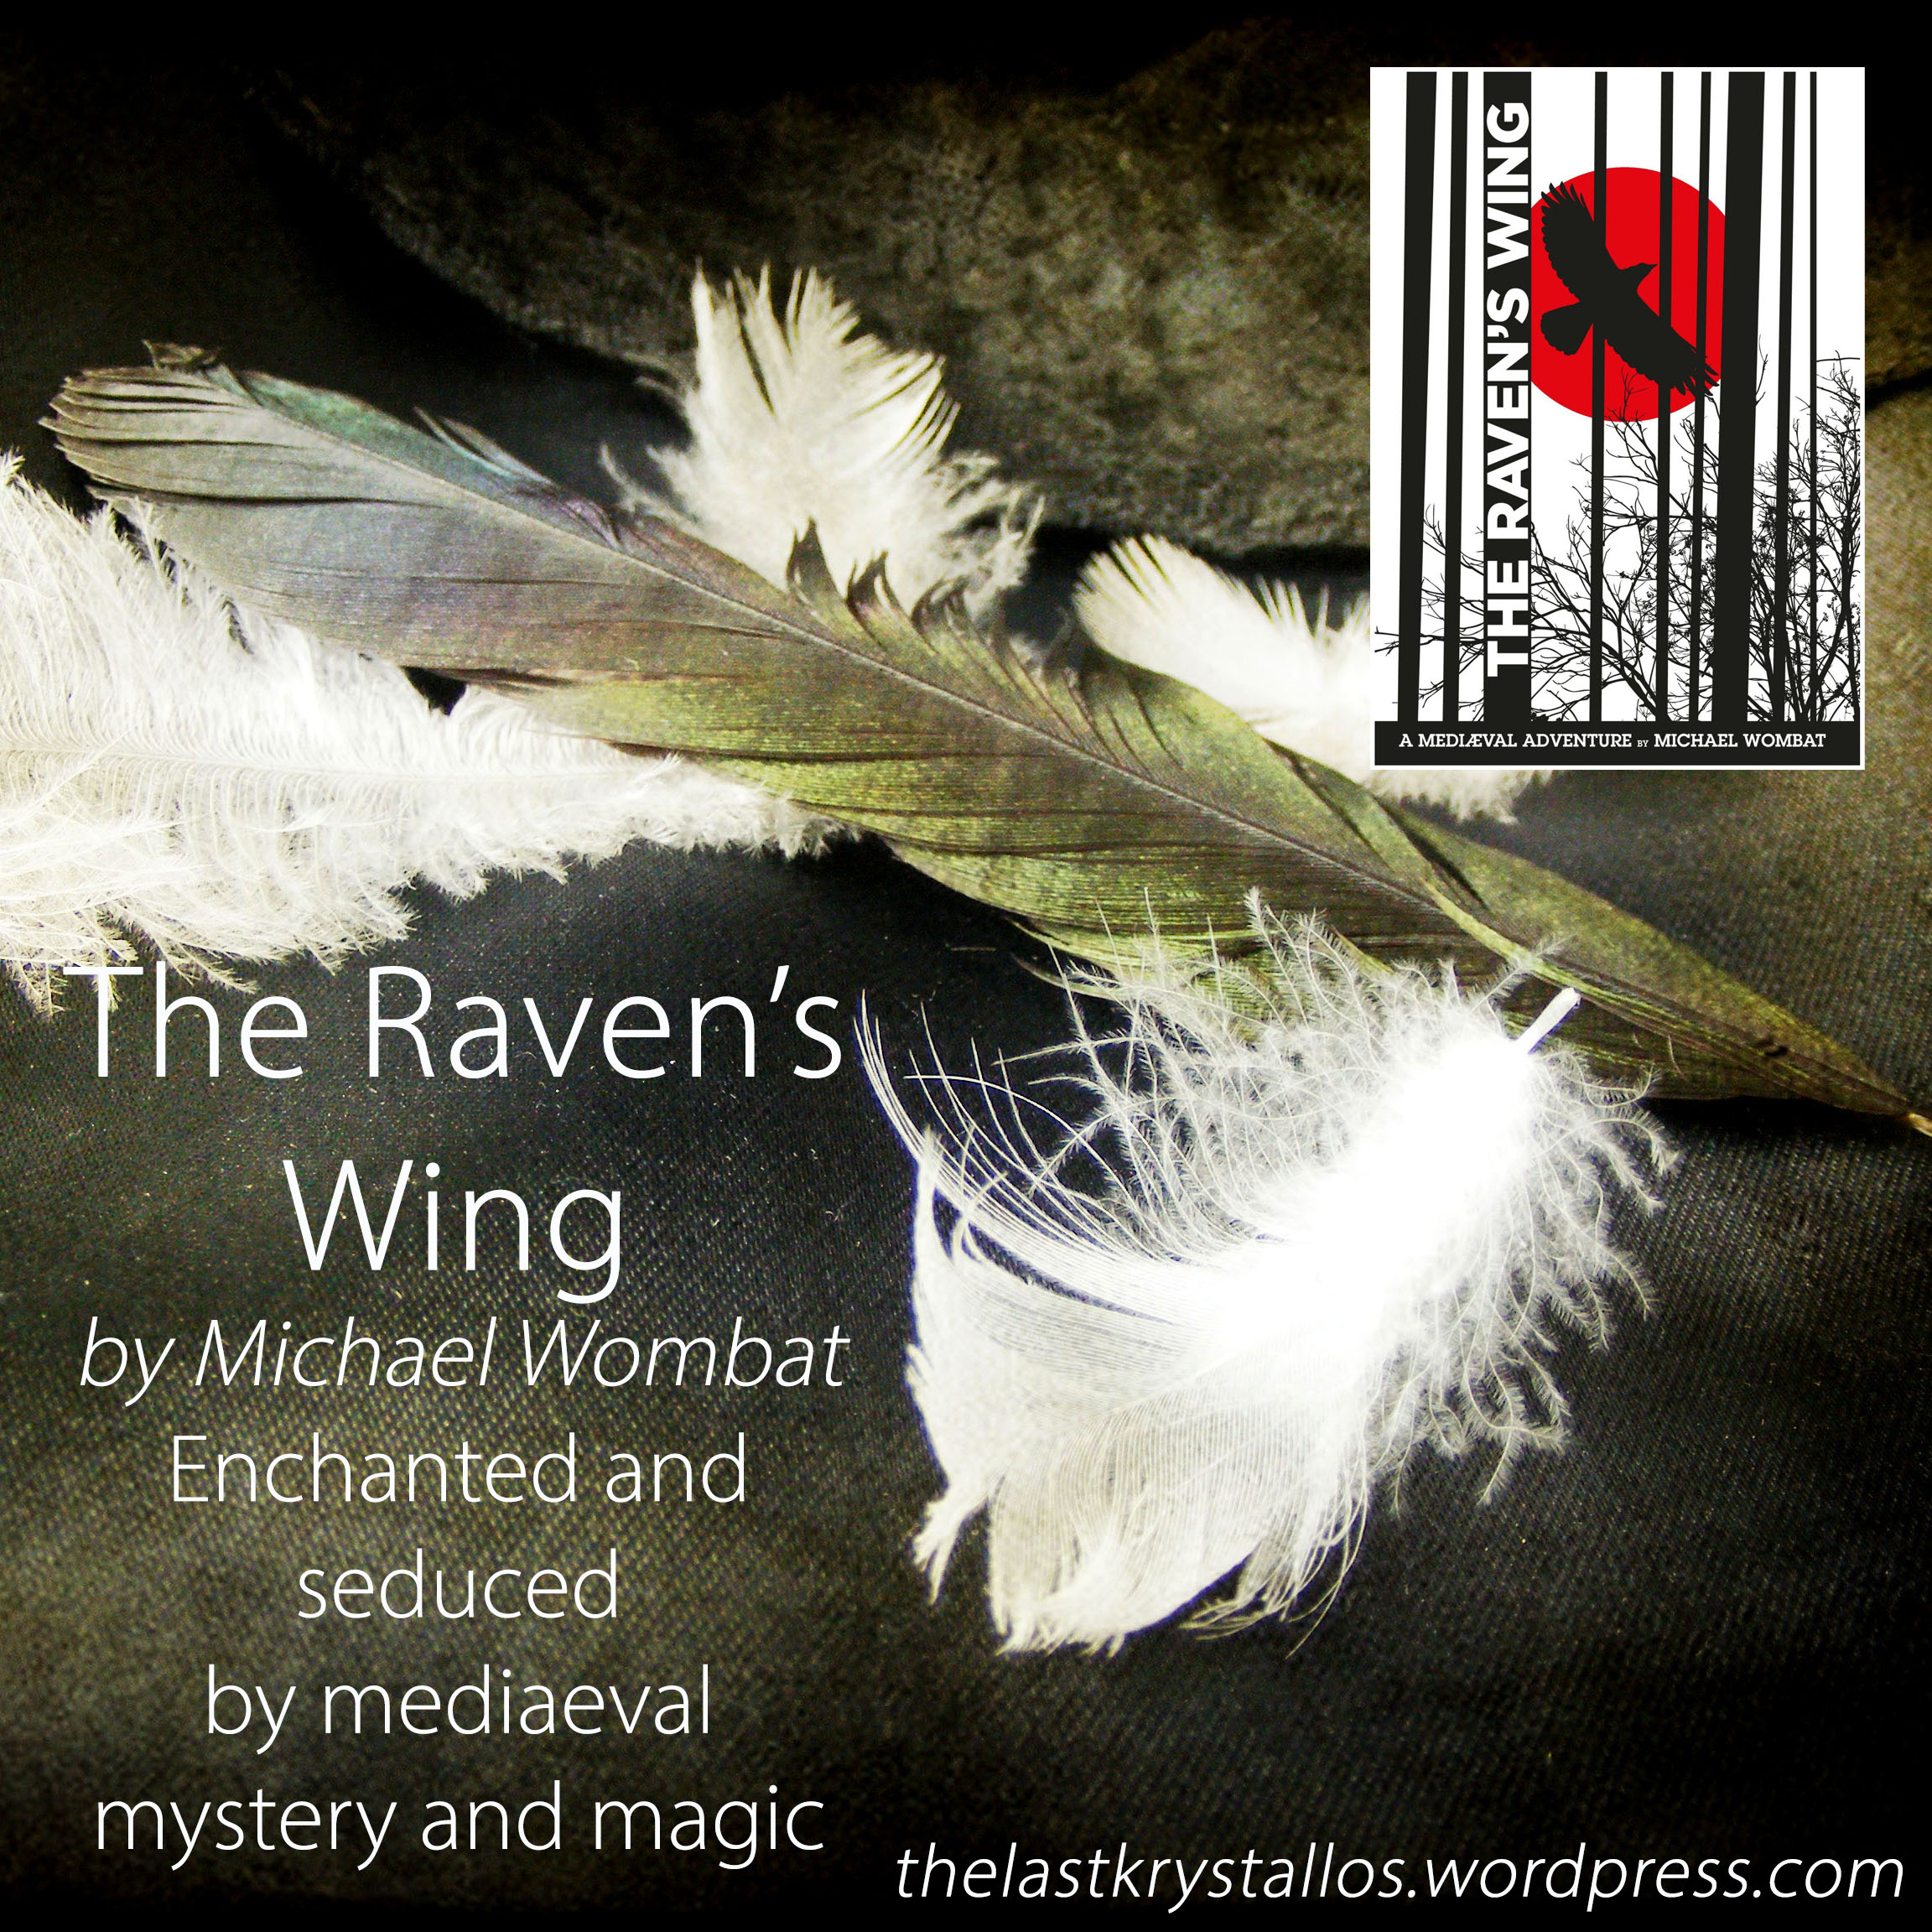 The Raven's Wing - Michael Wombat - Enchanted and Seduced Mediaeval Mystery and Magic - The Last Krystallos